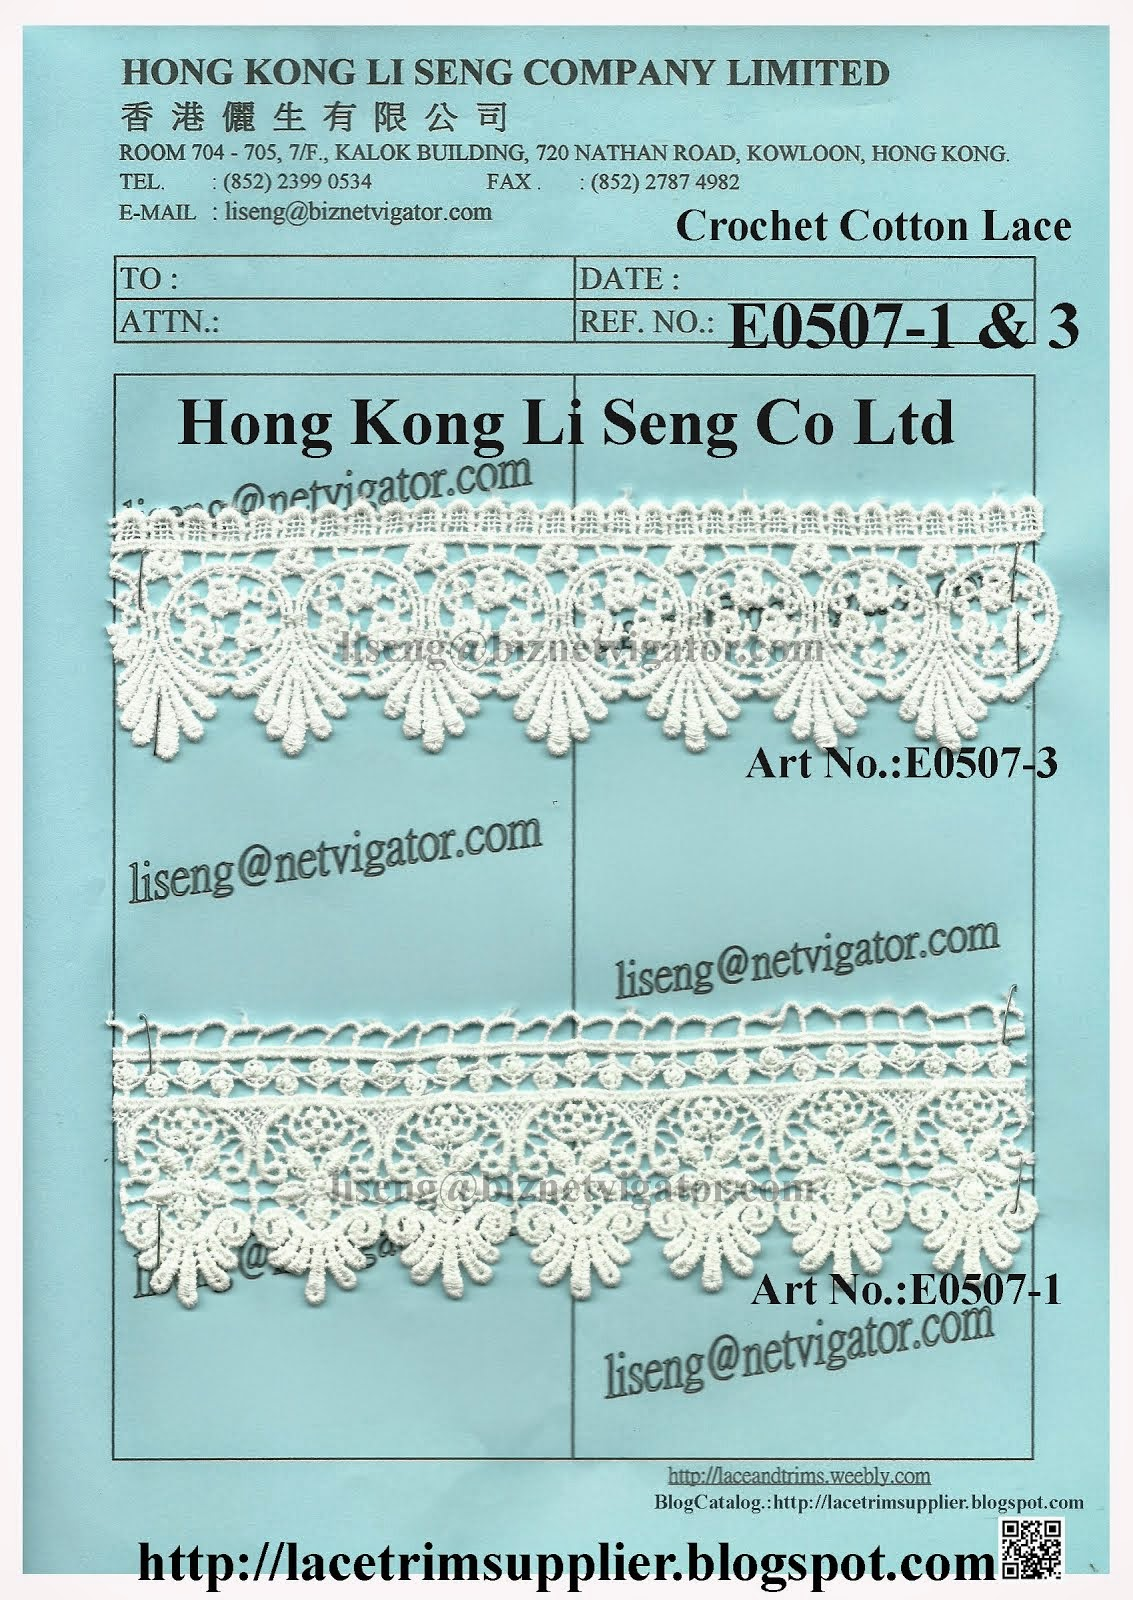 New Crochet Cotton Lace Factory - Hong Kong Li Seng Co Ltd